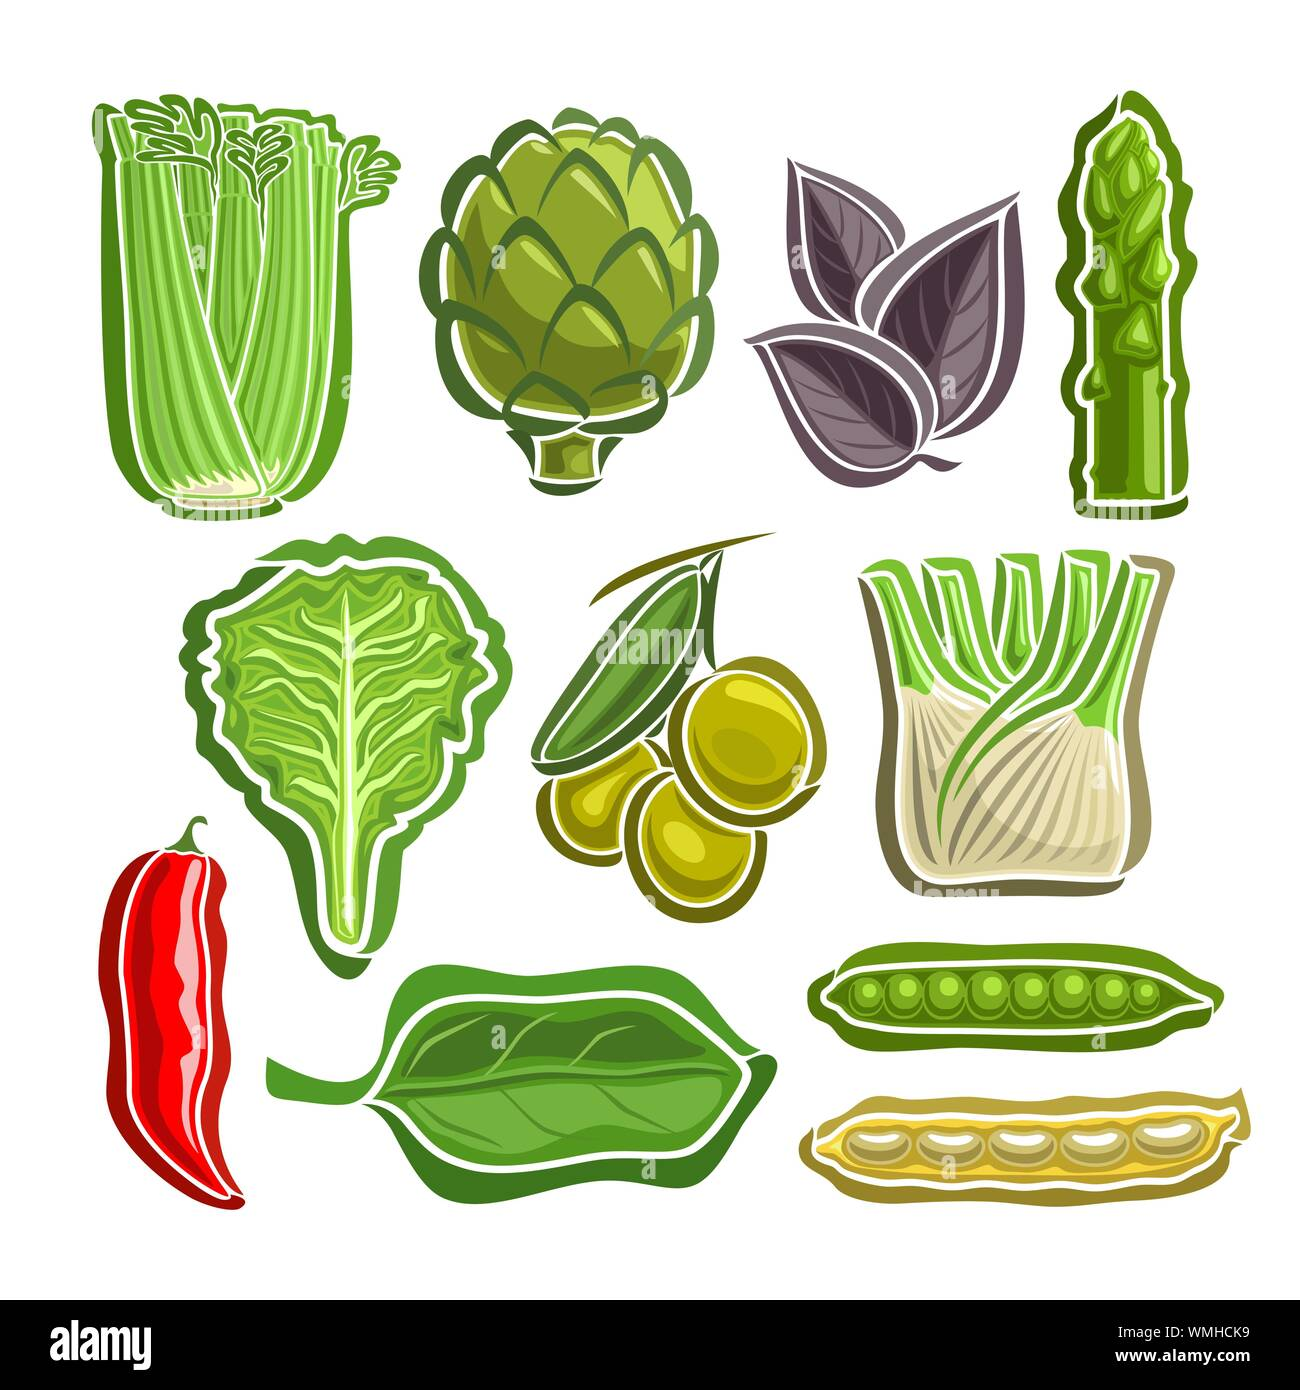 Vector Set of Vegetables simple icons isolated on white. Stock Vector